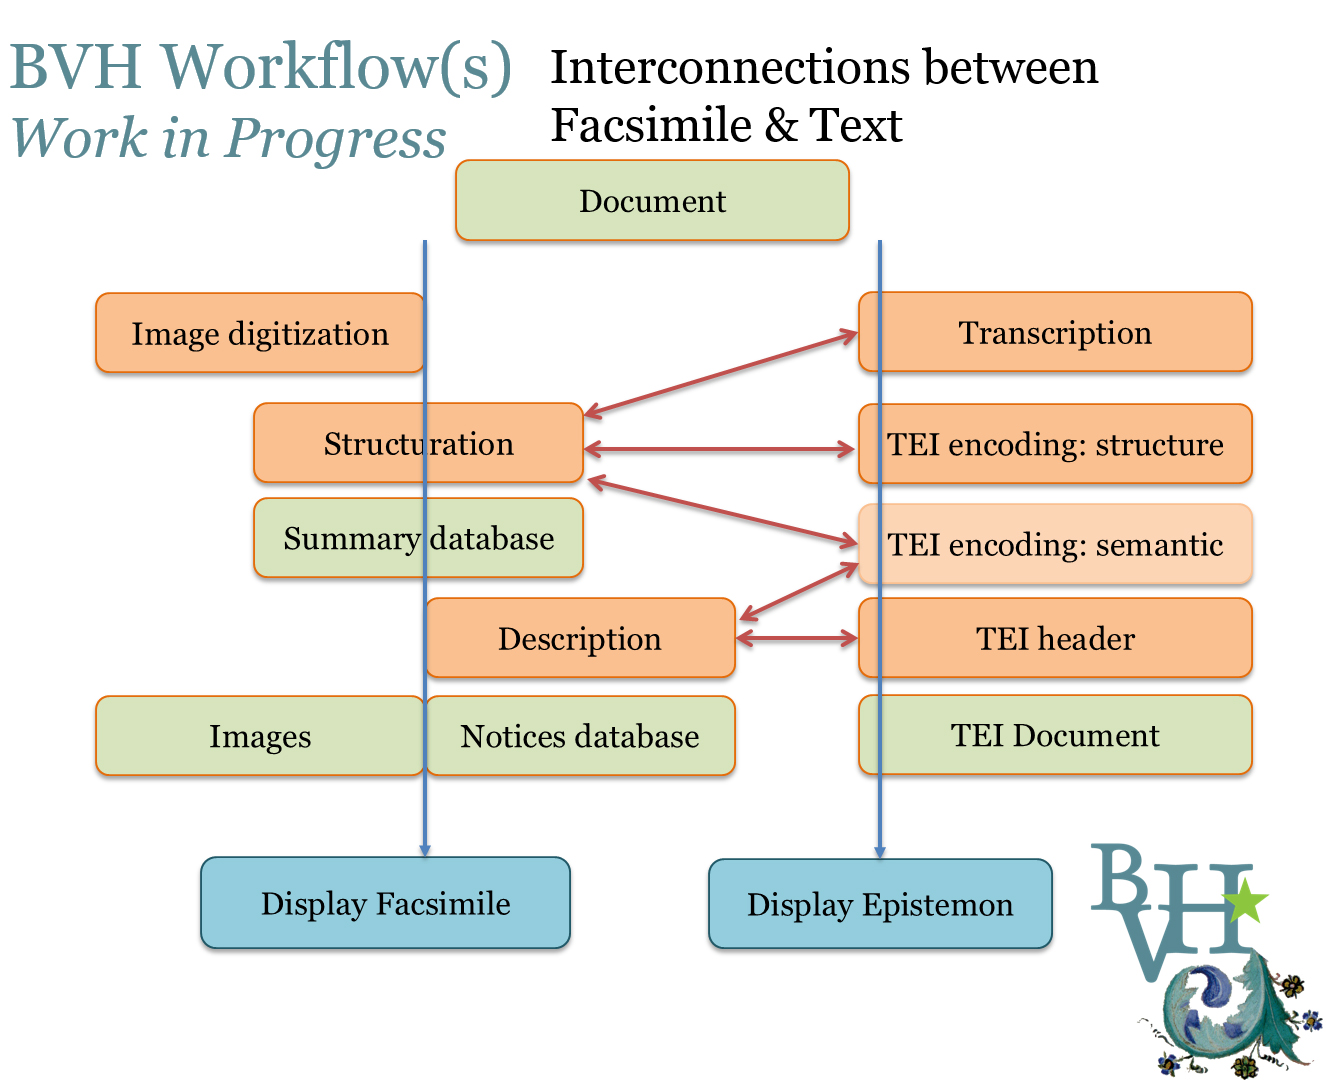 bvh_workflows_interconnections